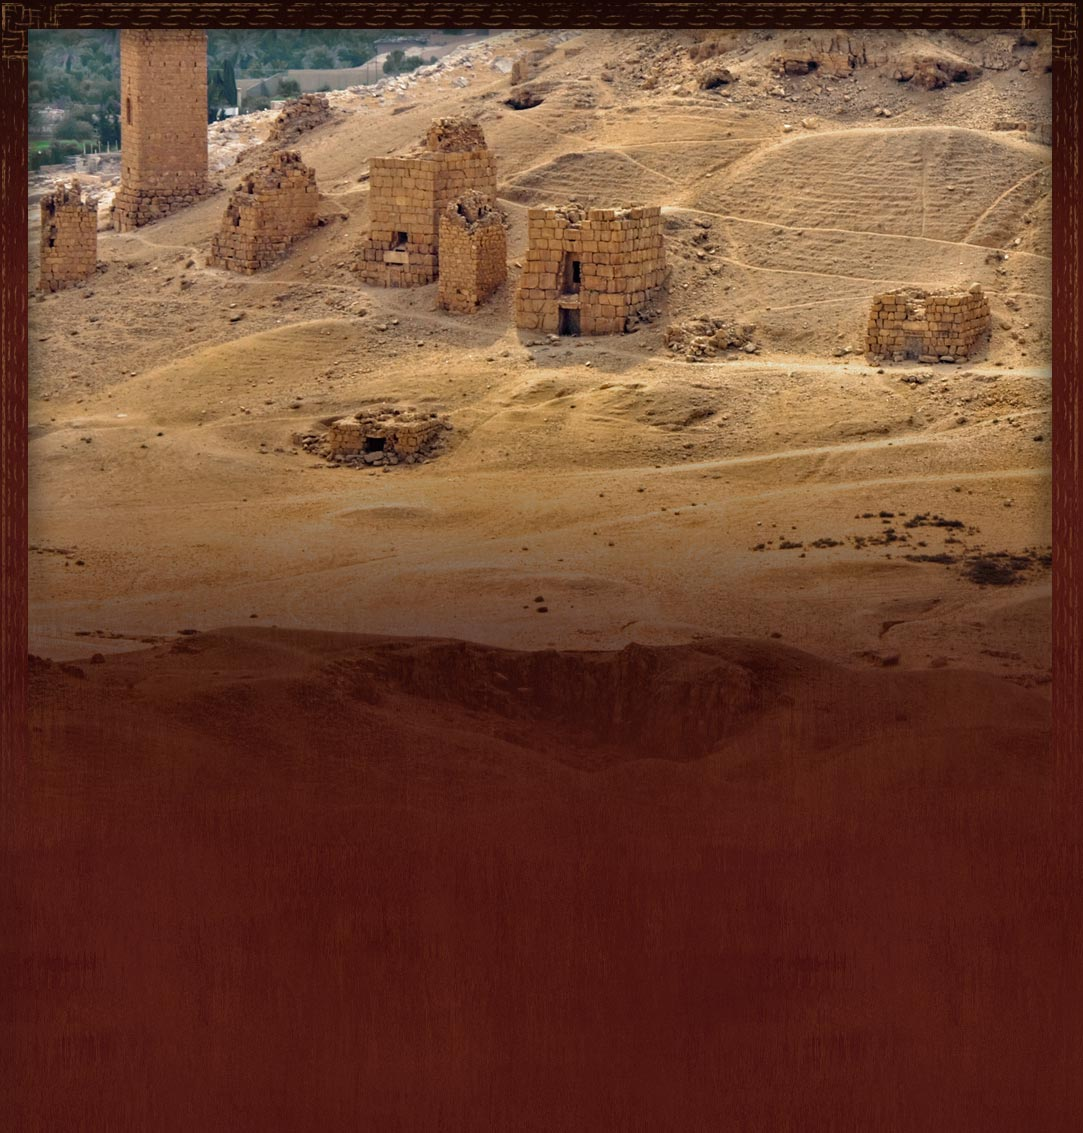 Biblical Archaeology As Proof Of The Bible